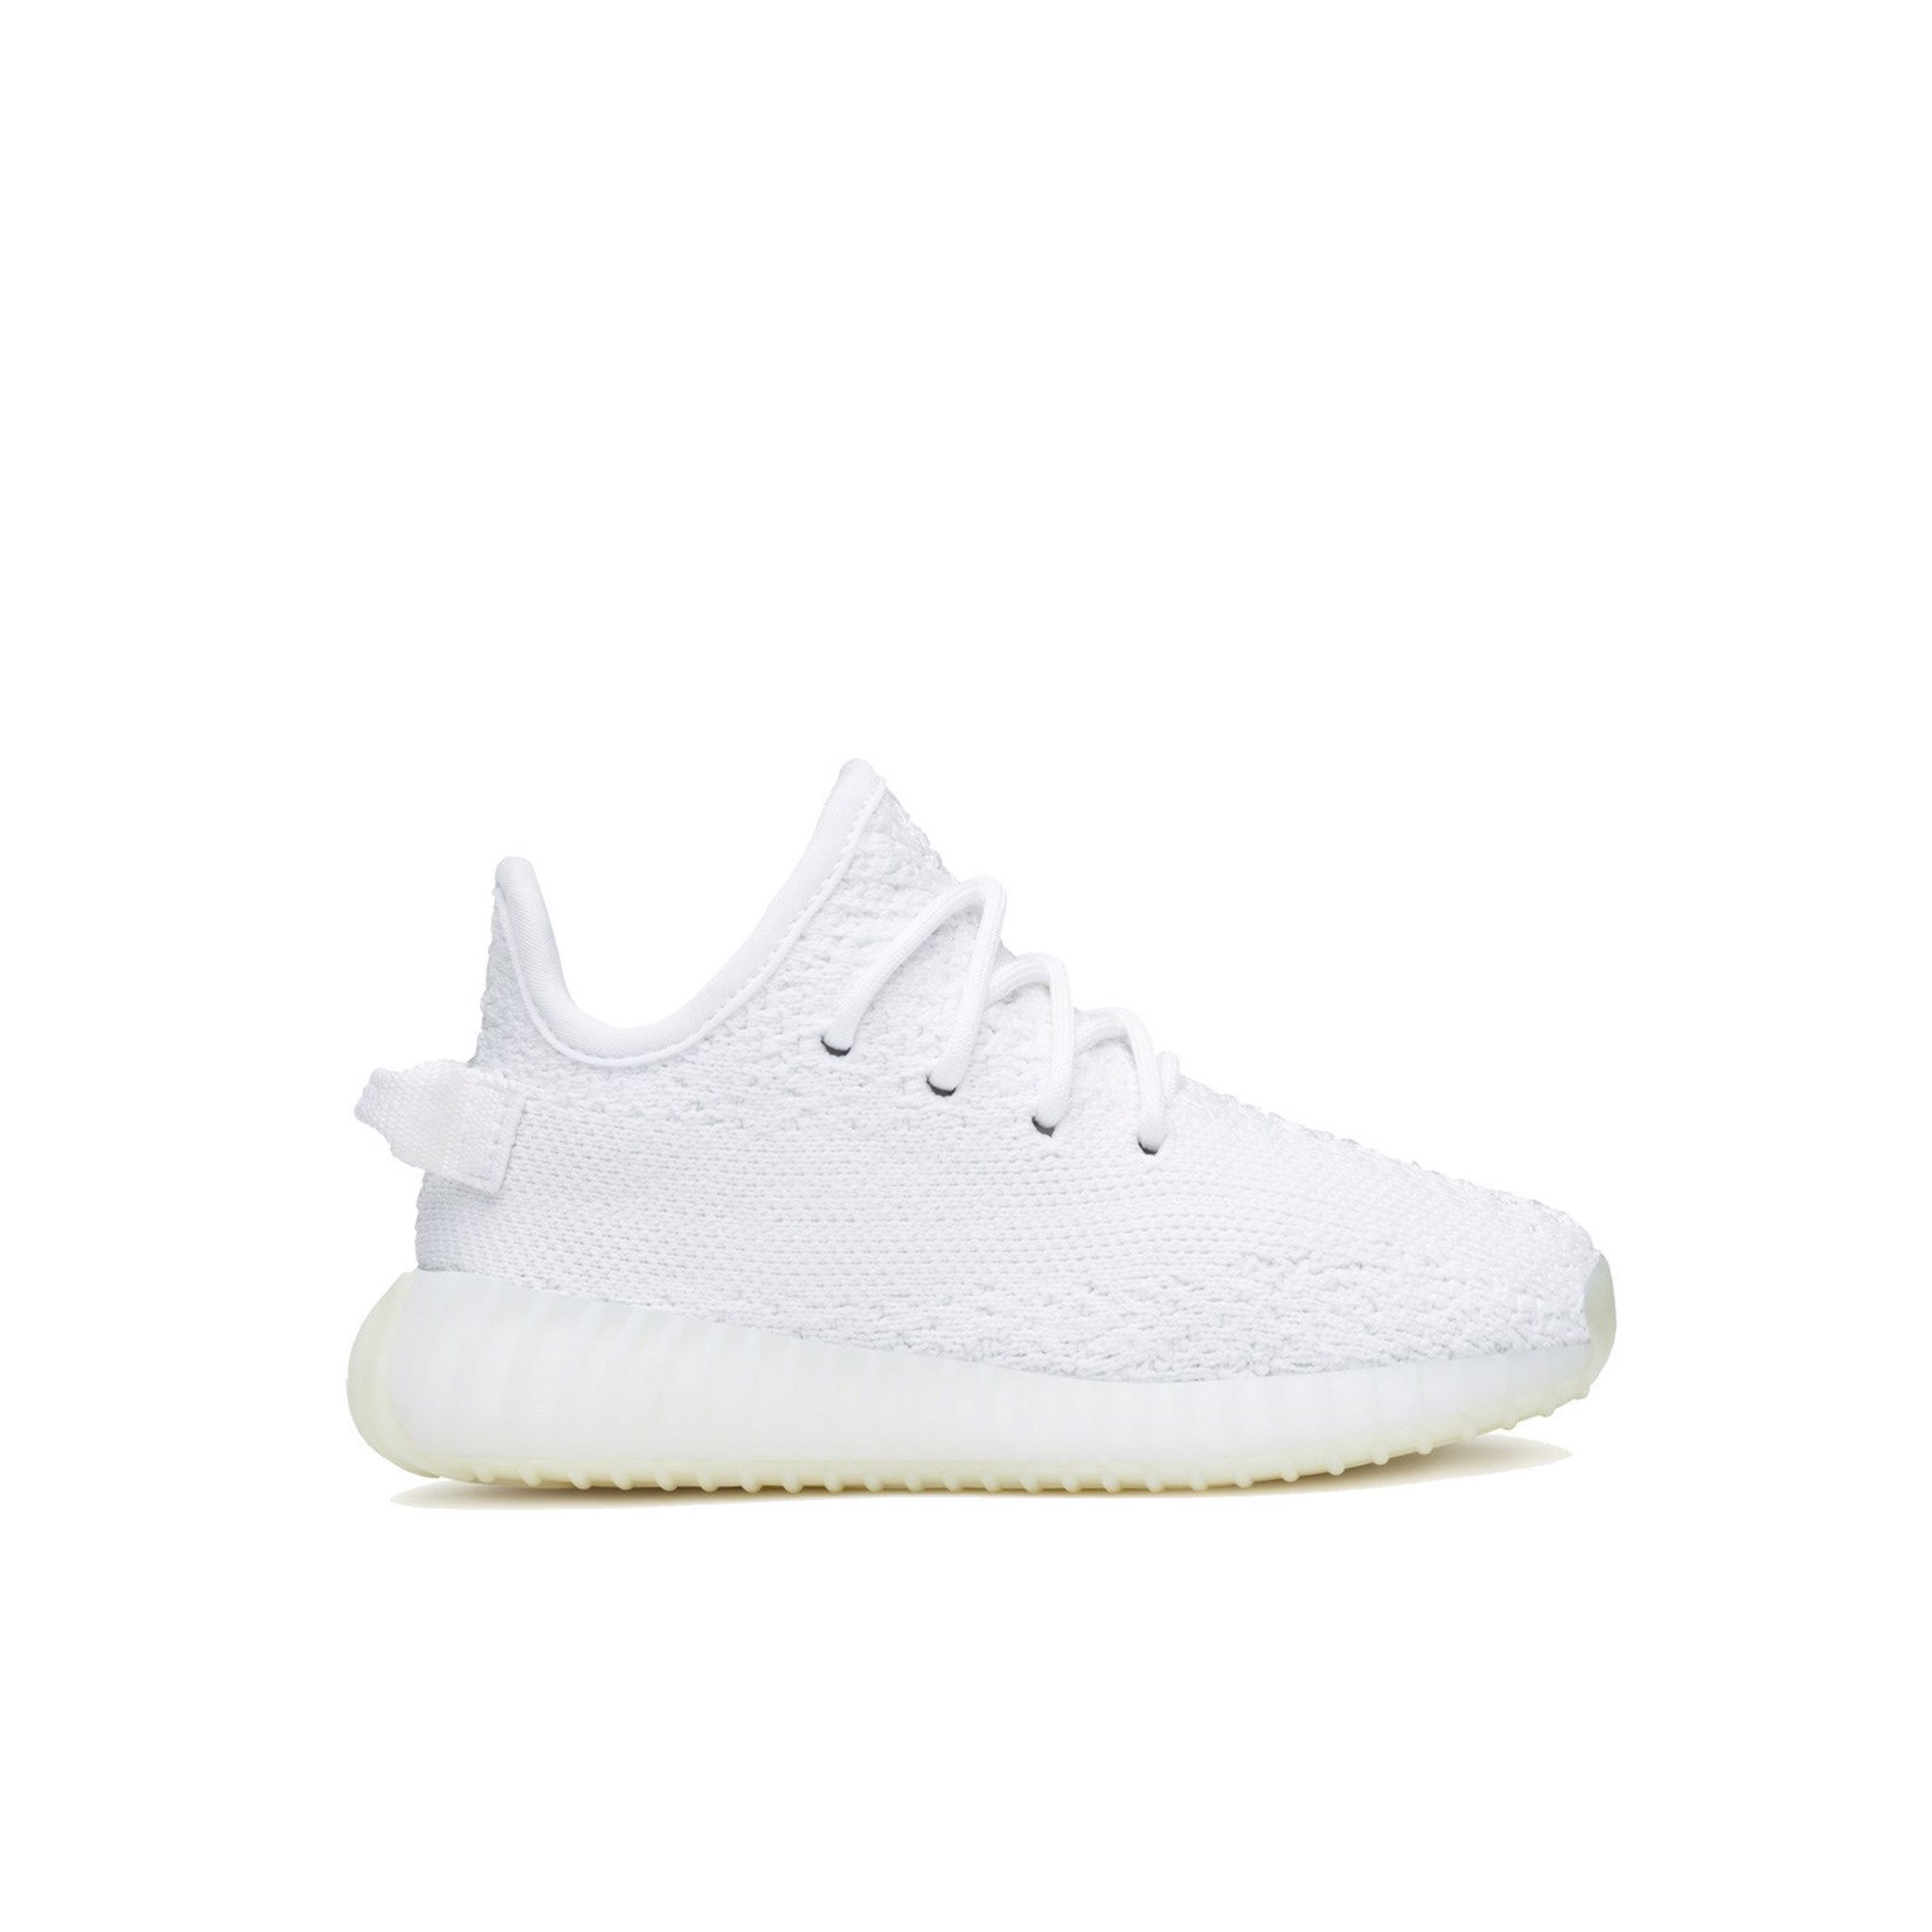 All white Yeezy 350's sizes toddler 5-10 available on https://t.co/BlGB6KQnnV dropping next week https://t.co/sZDQt4Y2DF